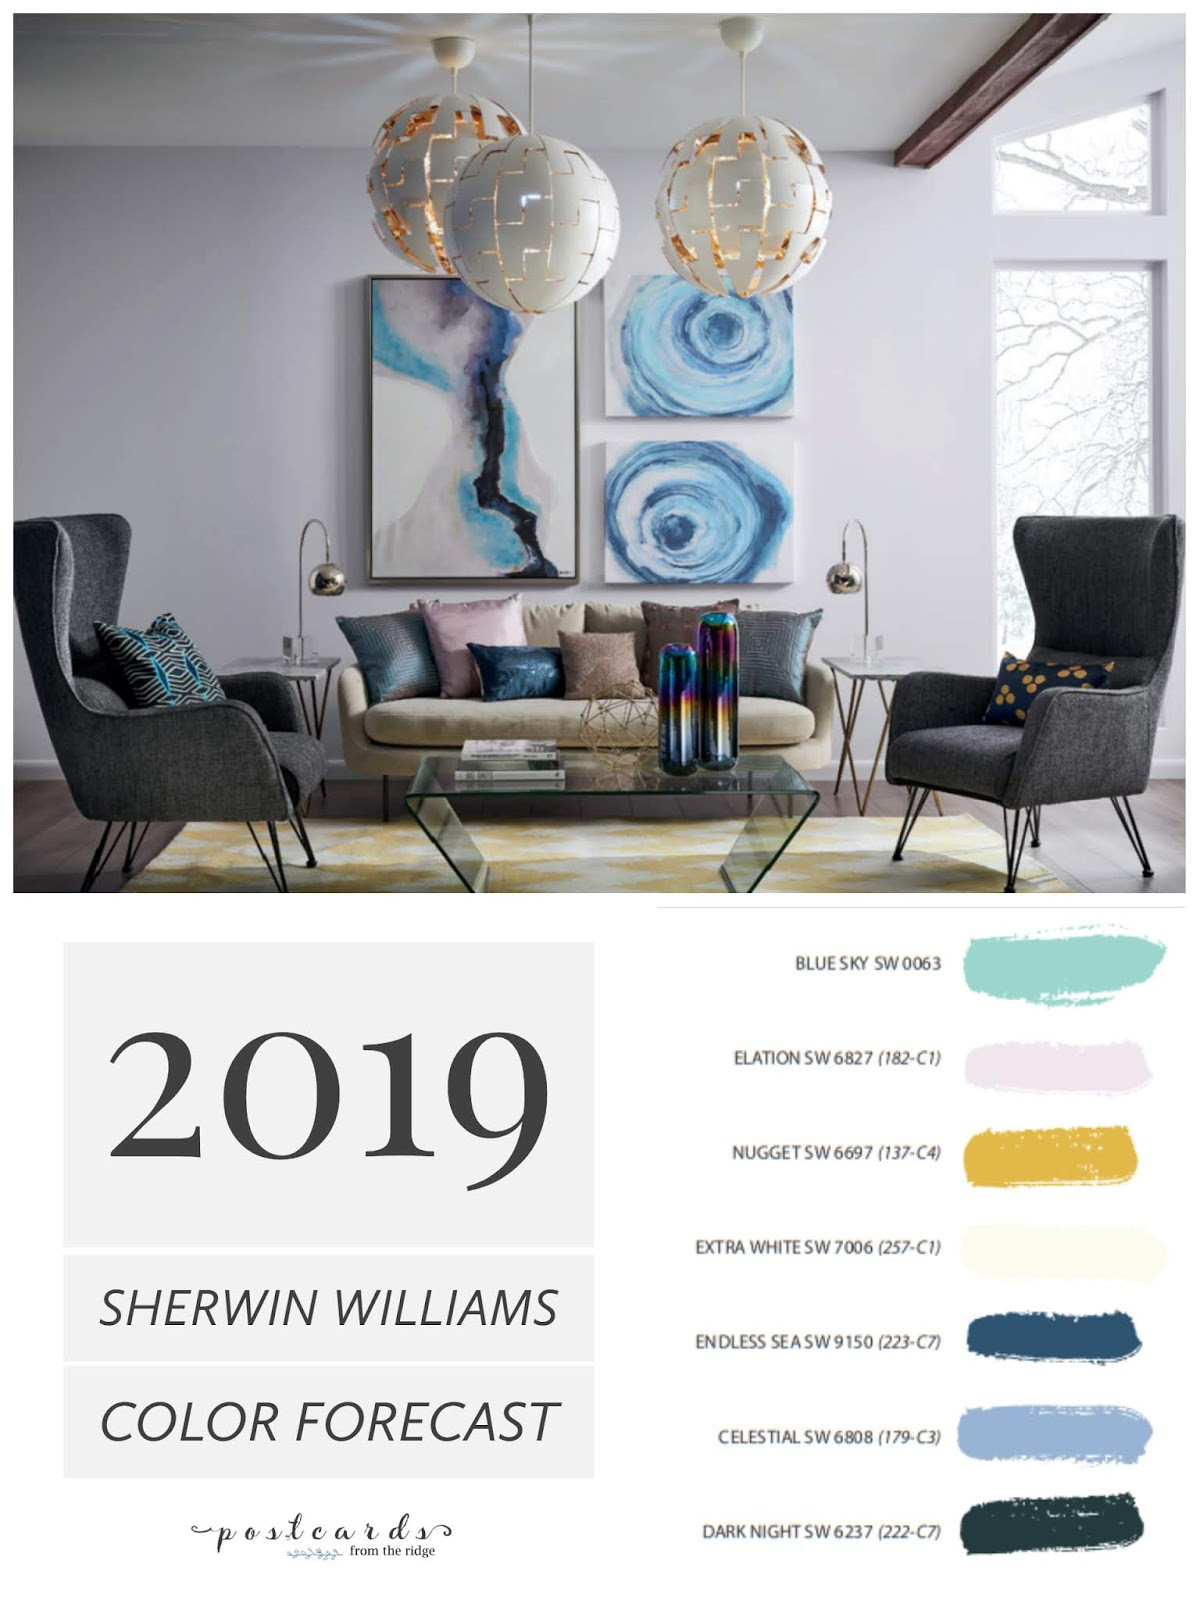 Best ideas about 2019 Paint Colors . Save or Pin 2019 Paint Color Forecast from Sherwin Williams Now.